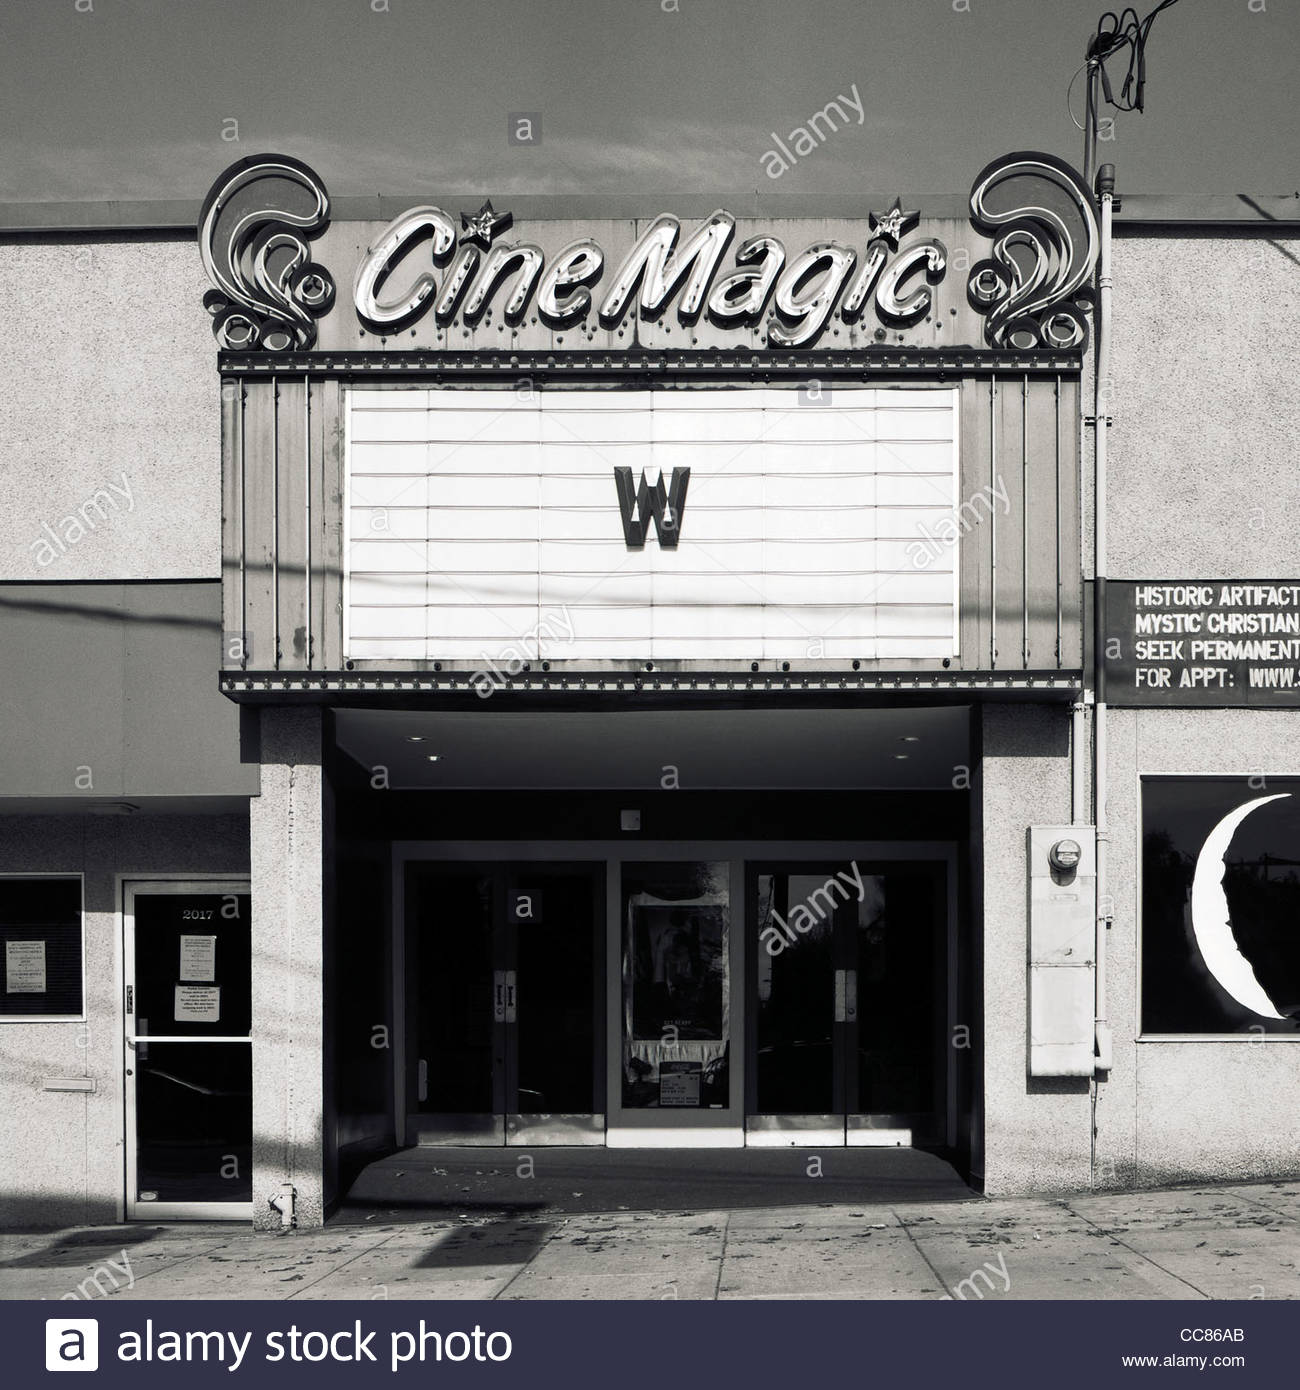 Cinemagic Movie Theater, Hawthorne District, Portland, Oregon, United States